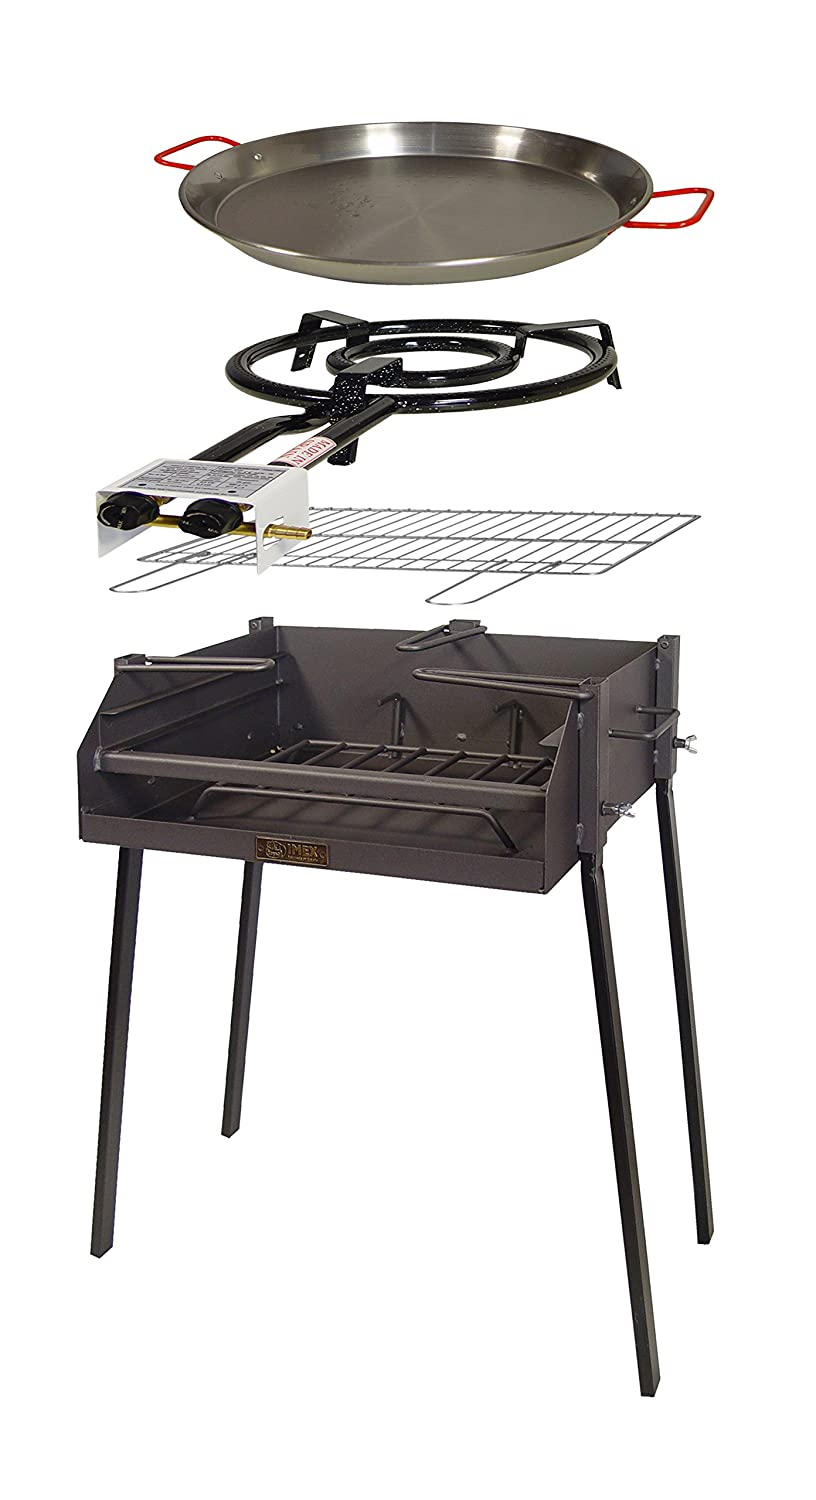 Imex The Fox 71589 Kit – Barbecue Square, 60 x 40 x 75 cm, Black Imex El Zorro